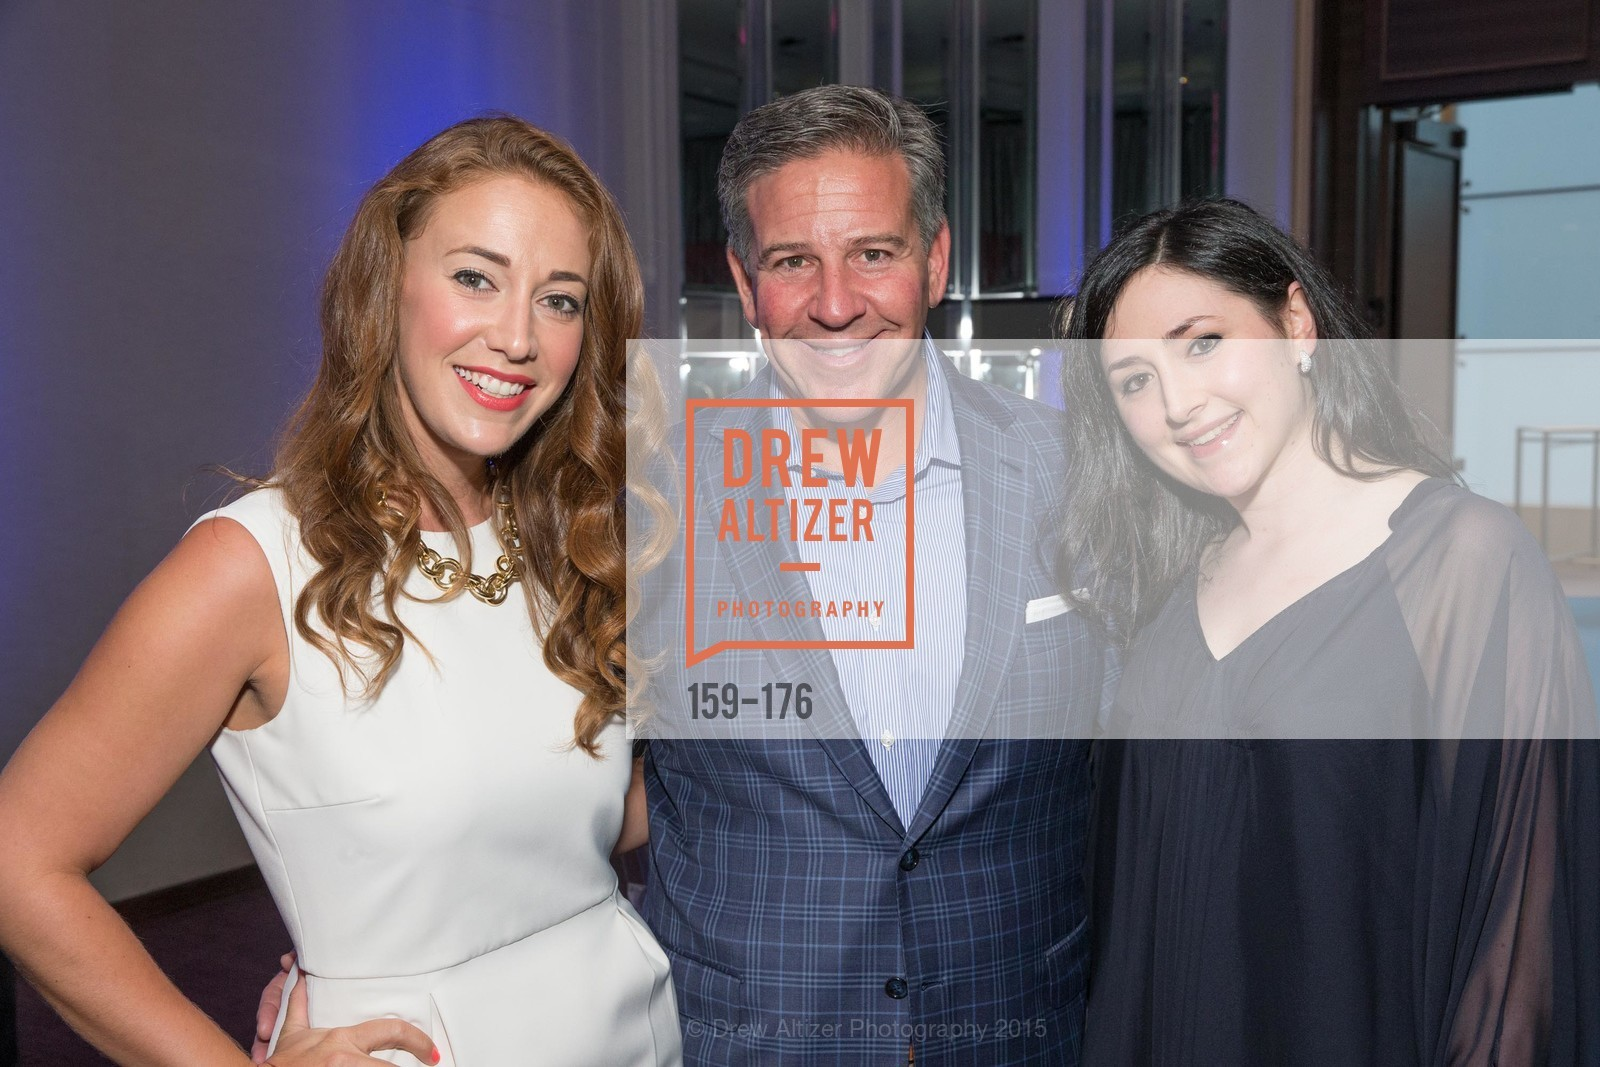 Schuyler Hudak, Gregg Lynn, Gabriella Schwartz, VIP Pride Celebration 2015, St. Regis, June 18th, 2015,Drew Altizer, Drew Altizer Photography, full-service agency, private events, San Francisco photographer, photographer california